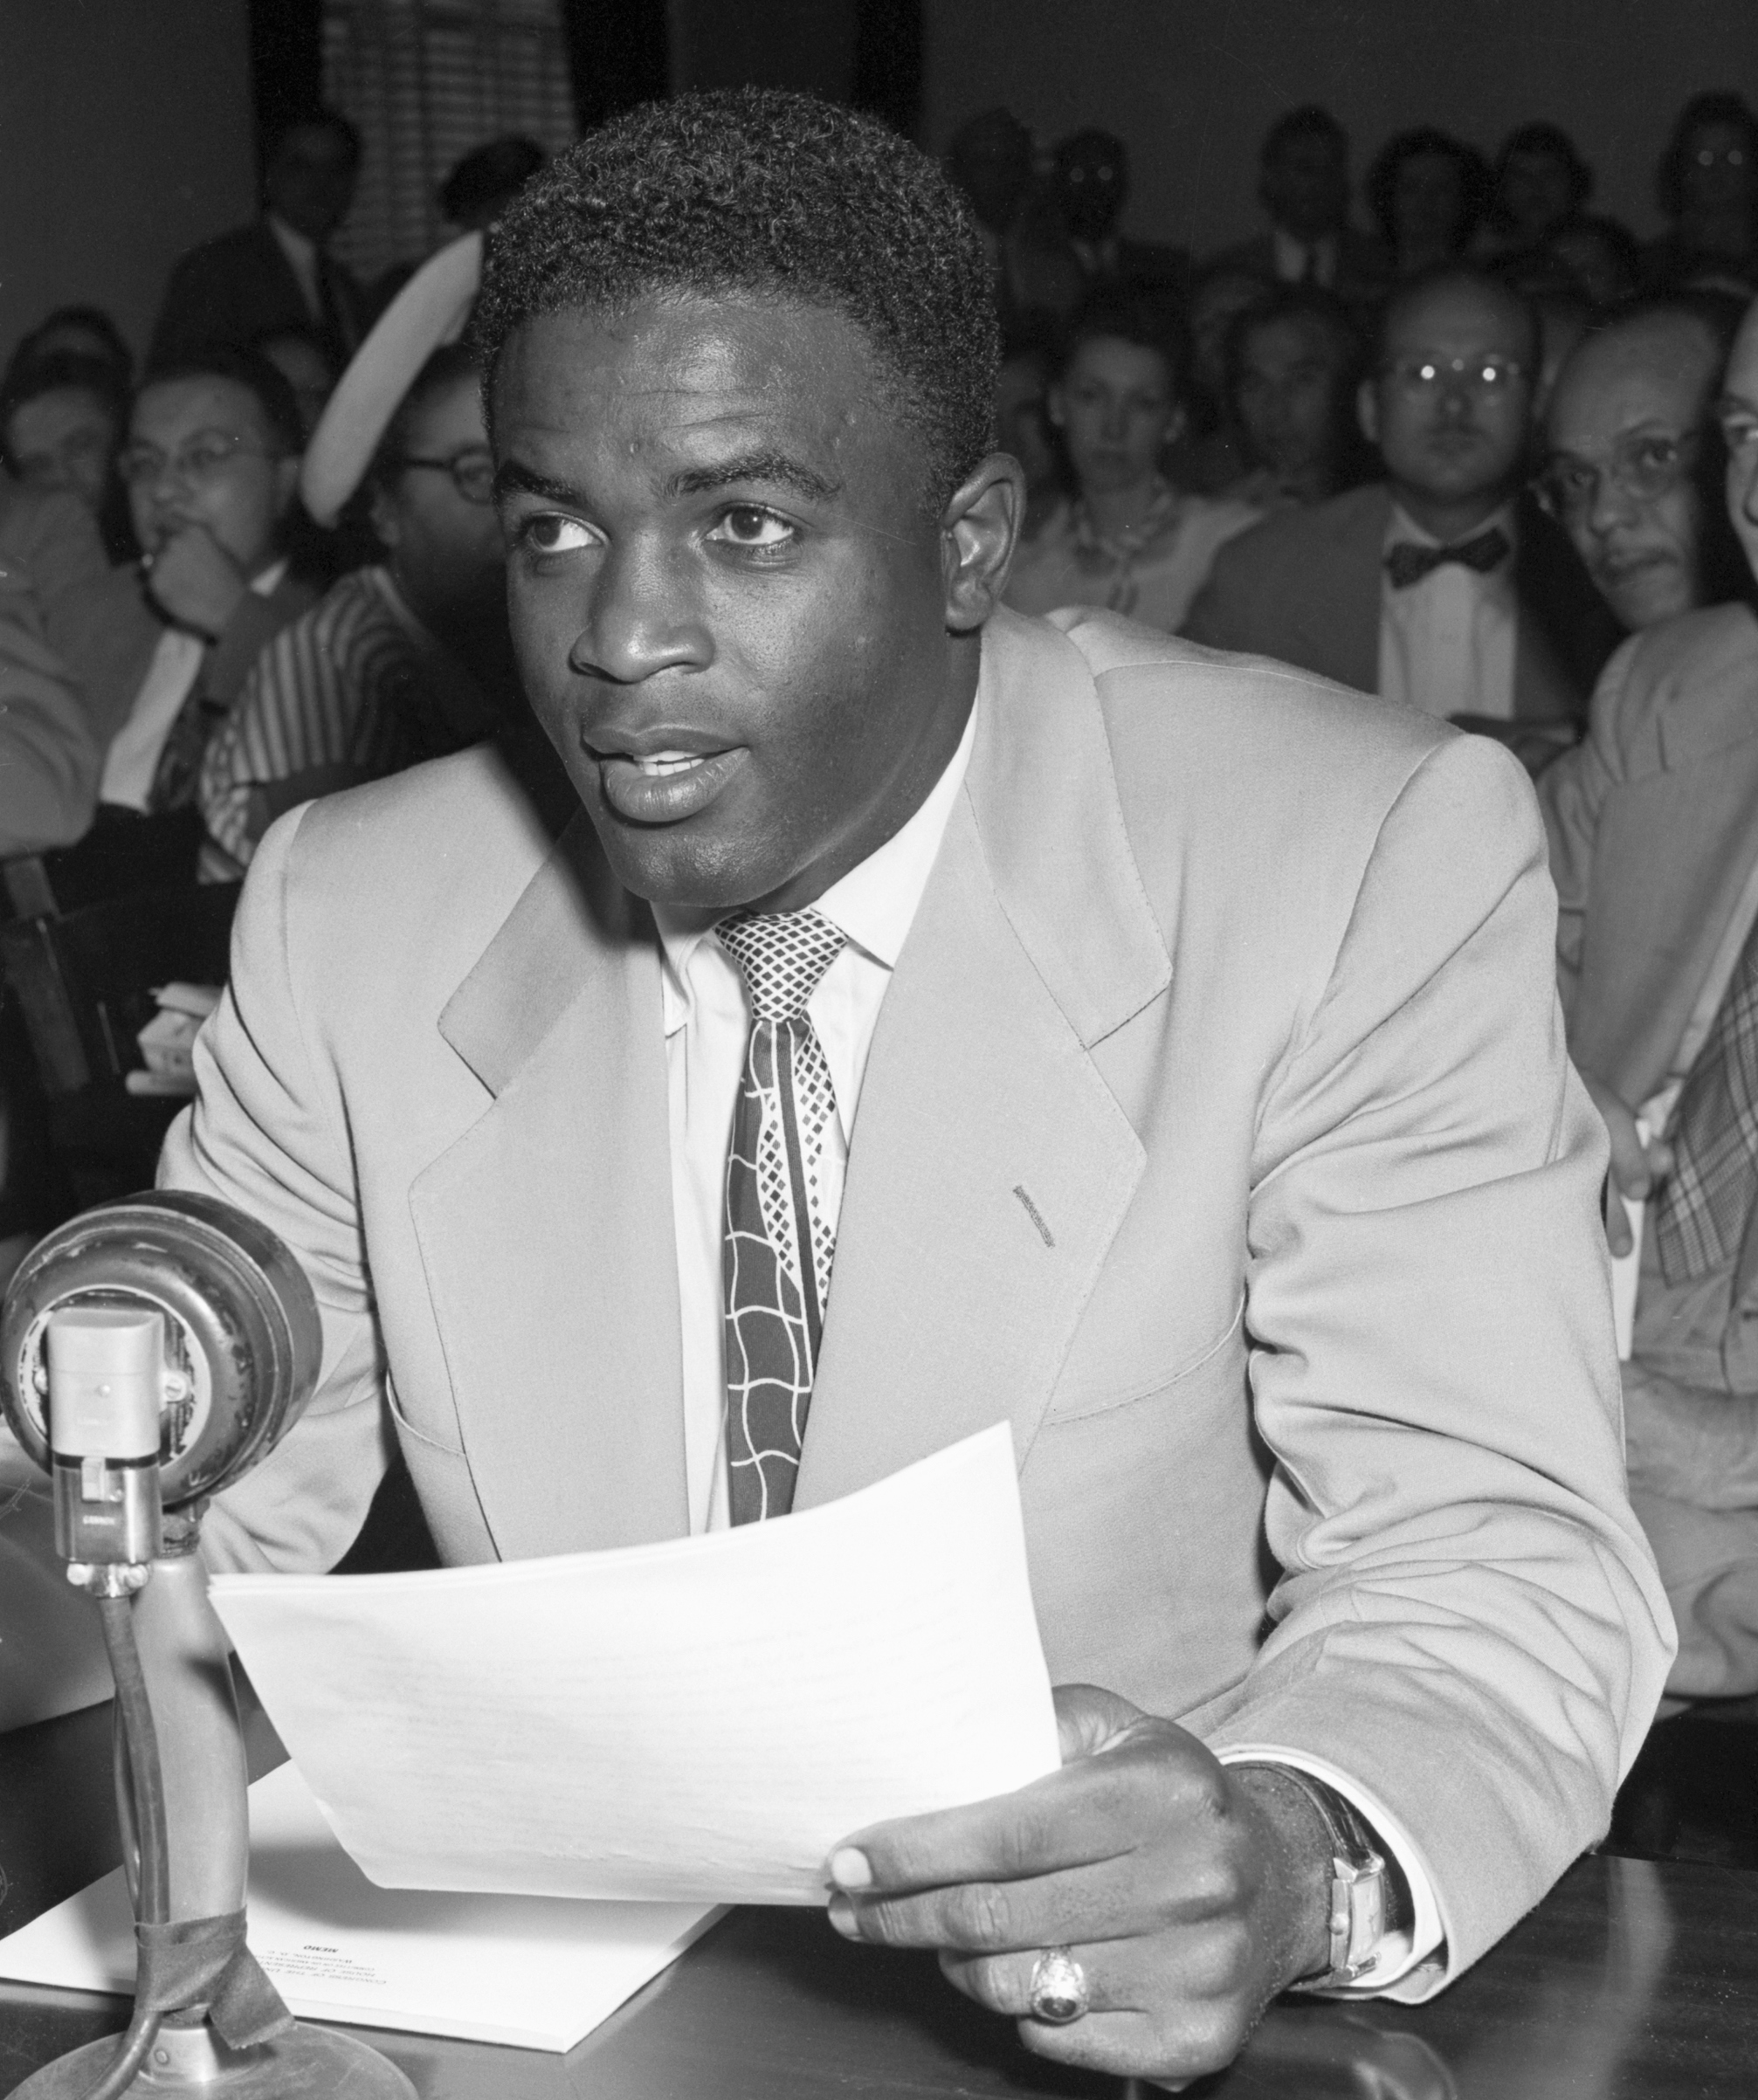 Jackie Robinson testifying before the House Un-American Activities Committee on July 18, 1949